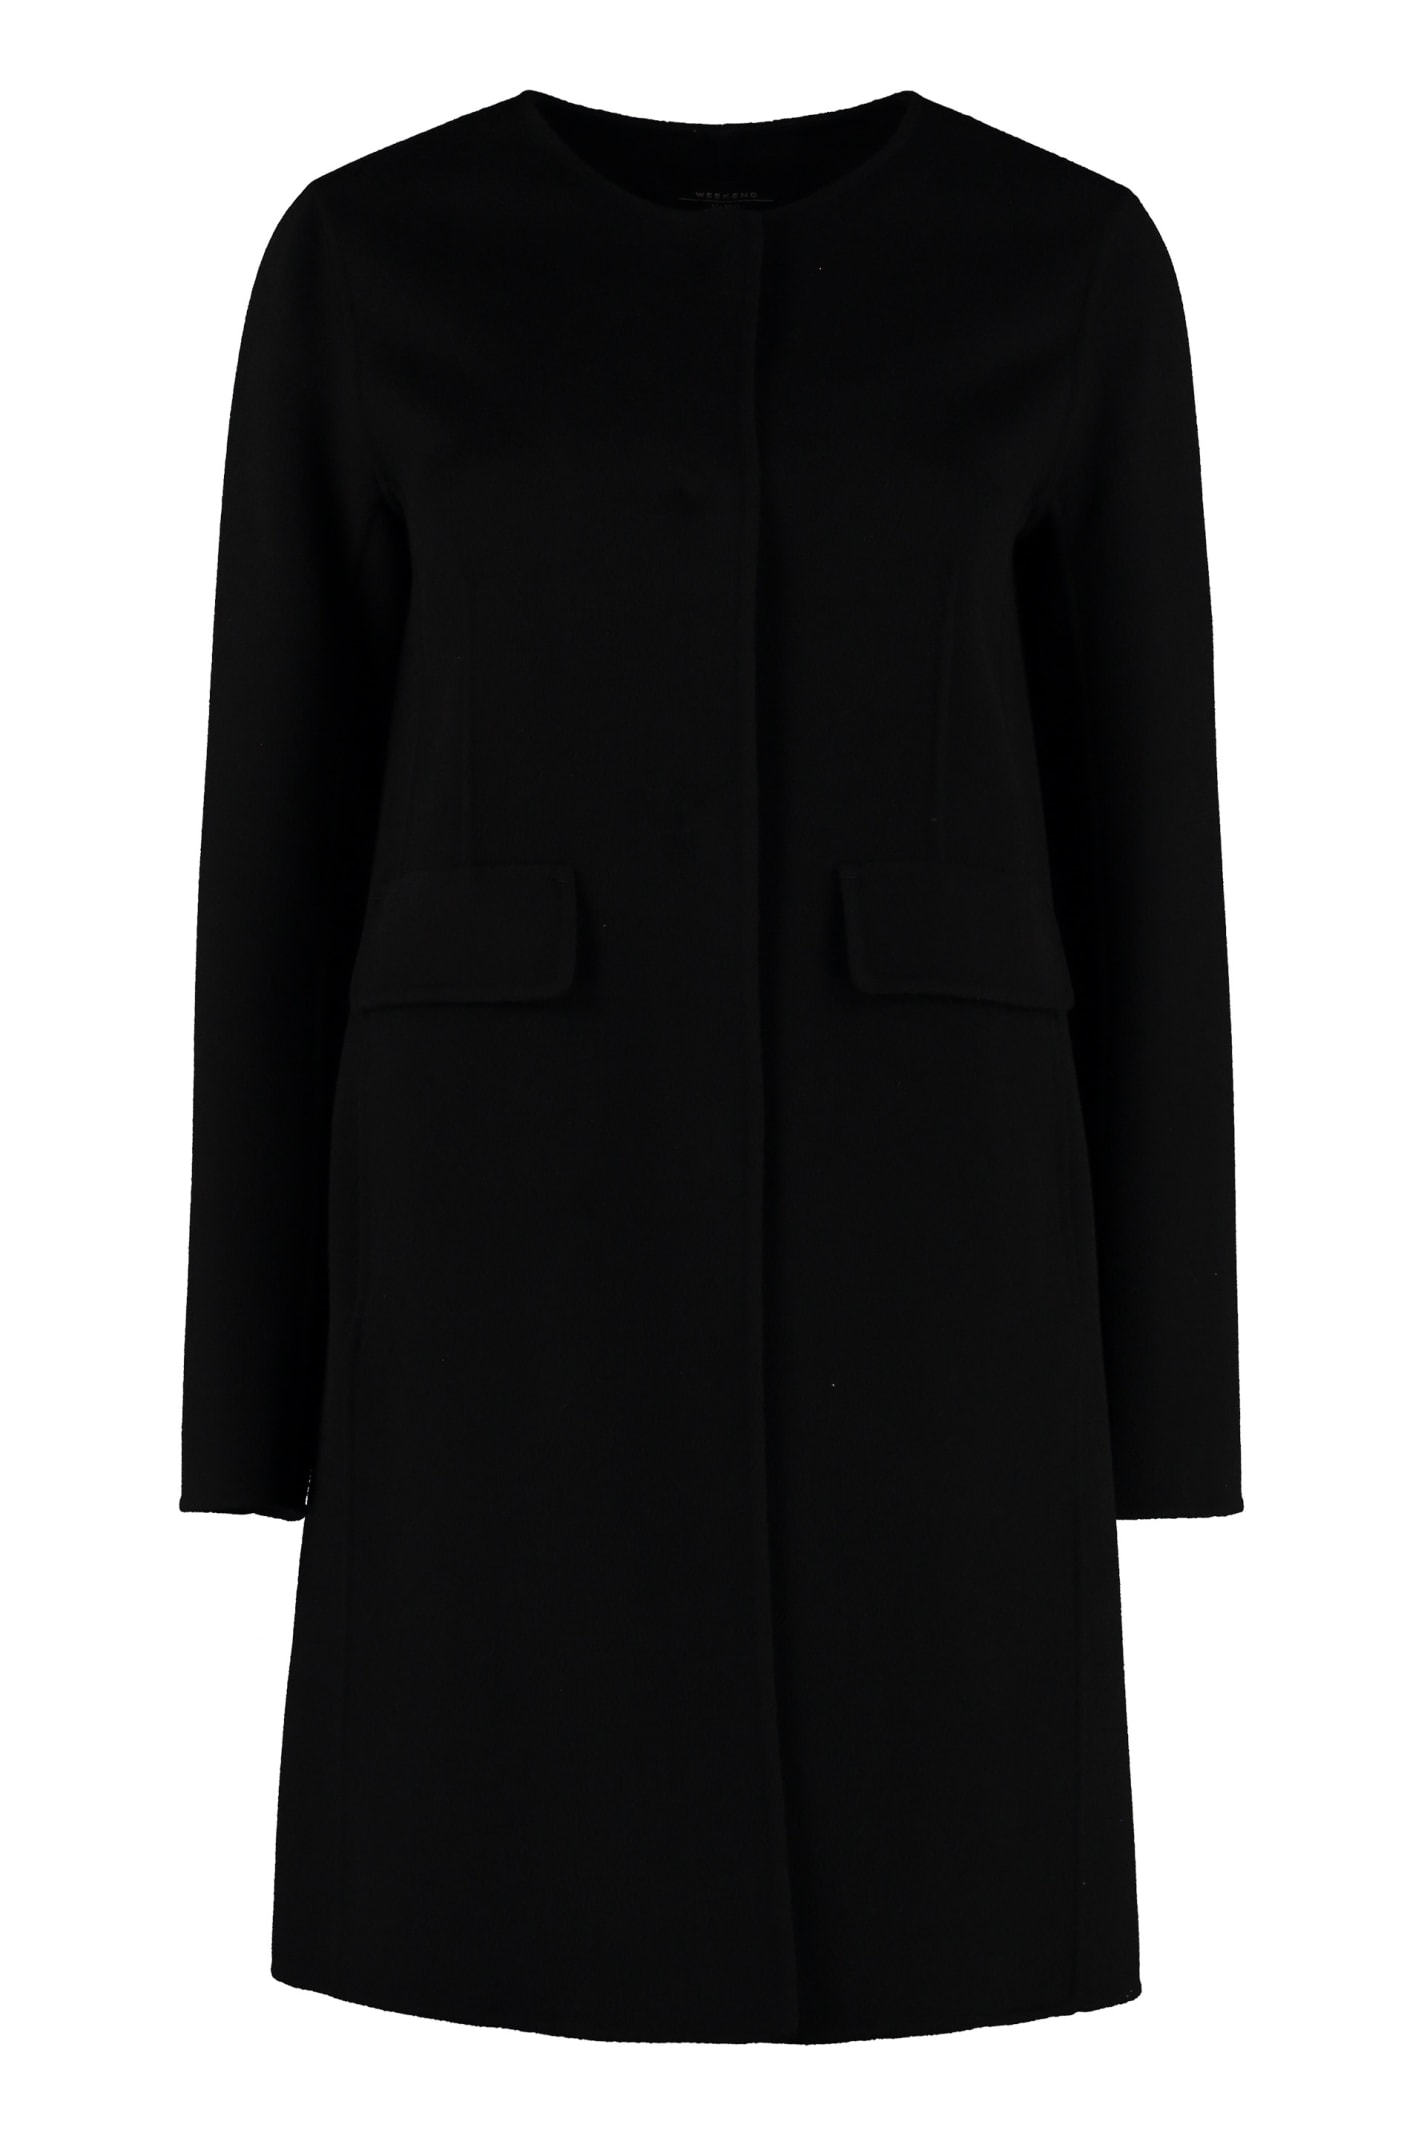 Weekend Max Mara Guinea Virgin Wool Coat